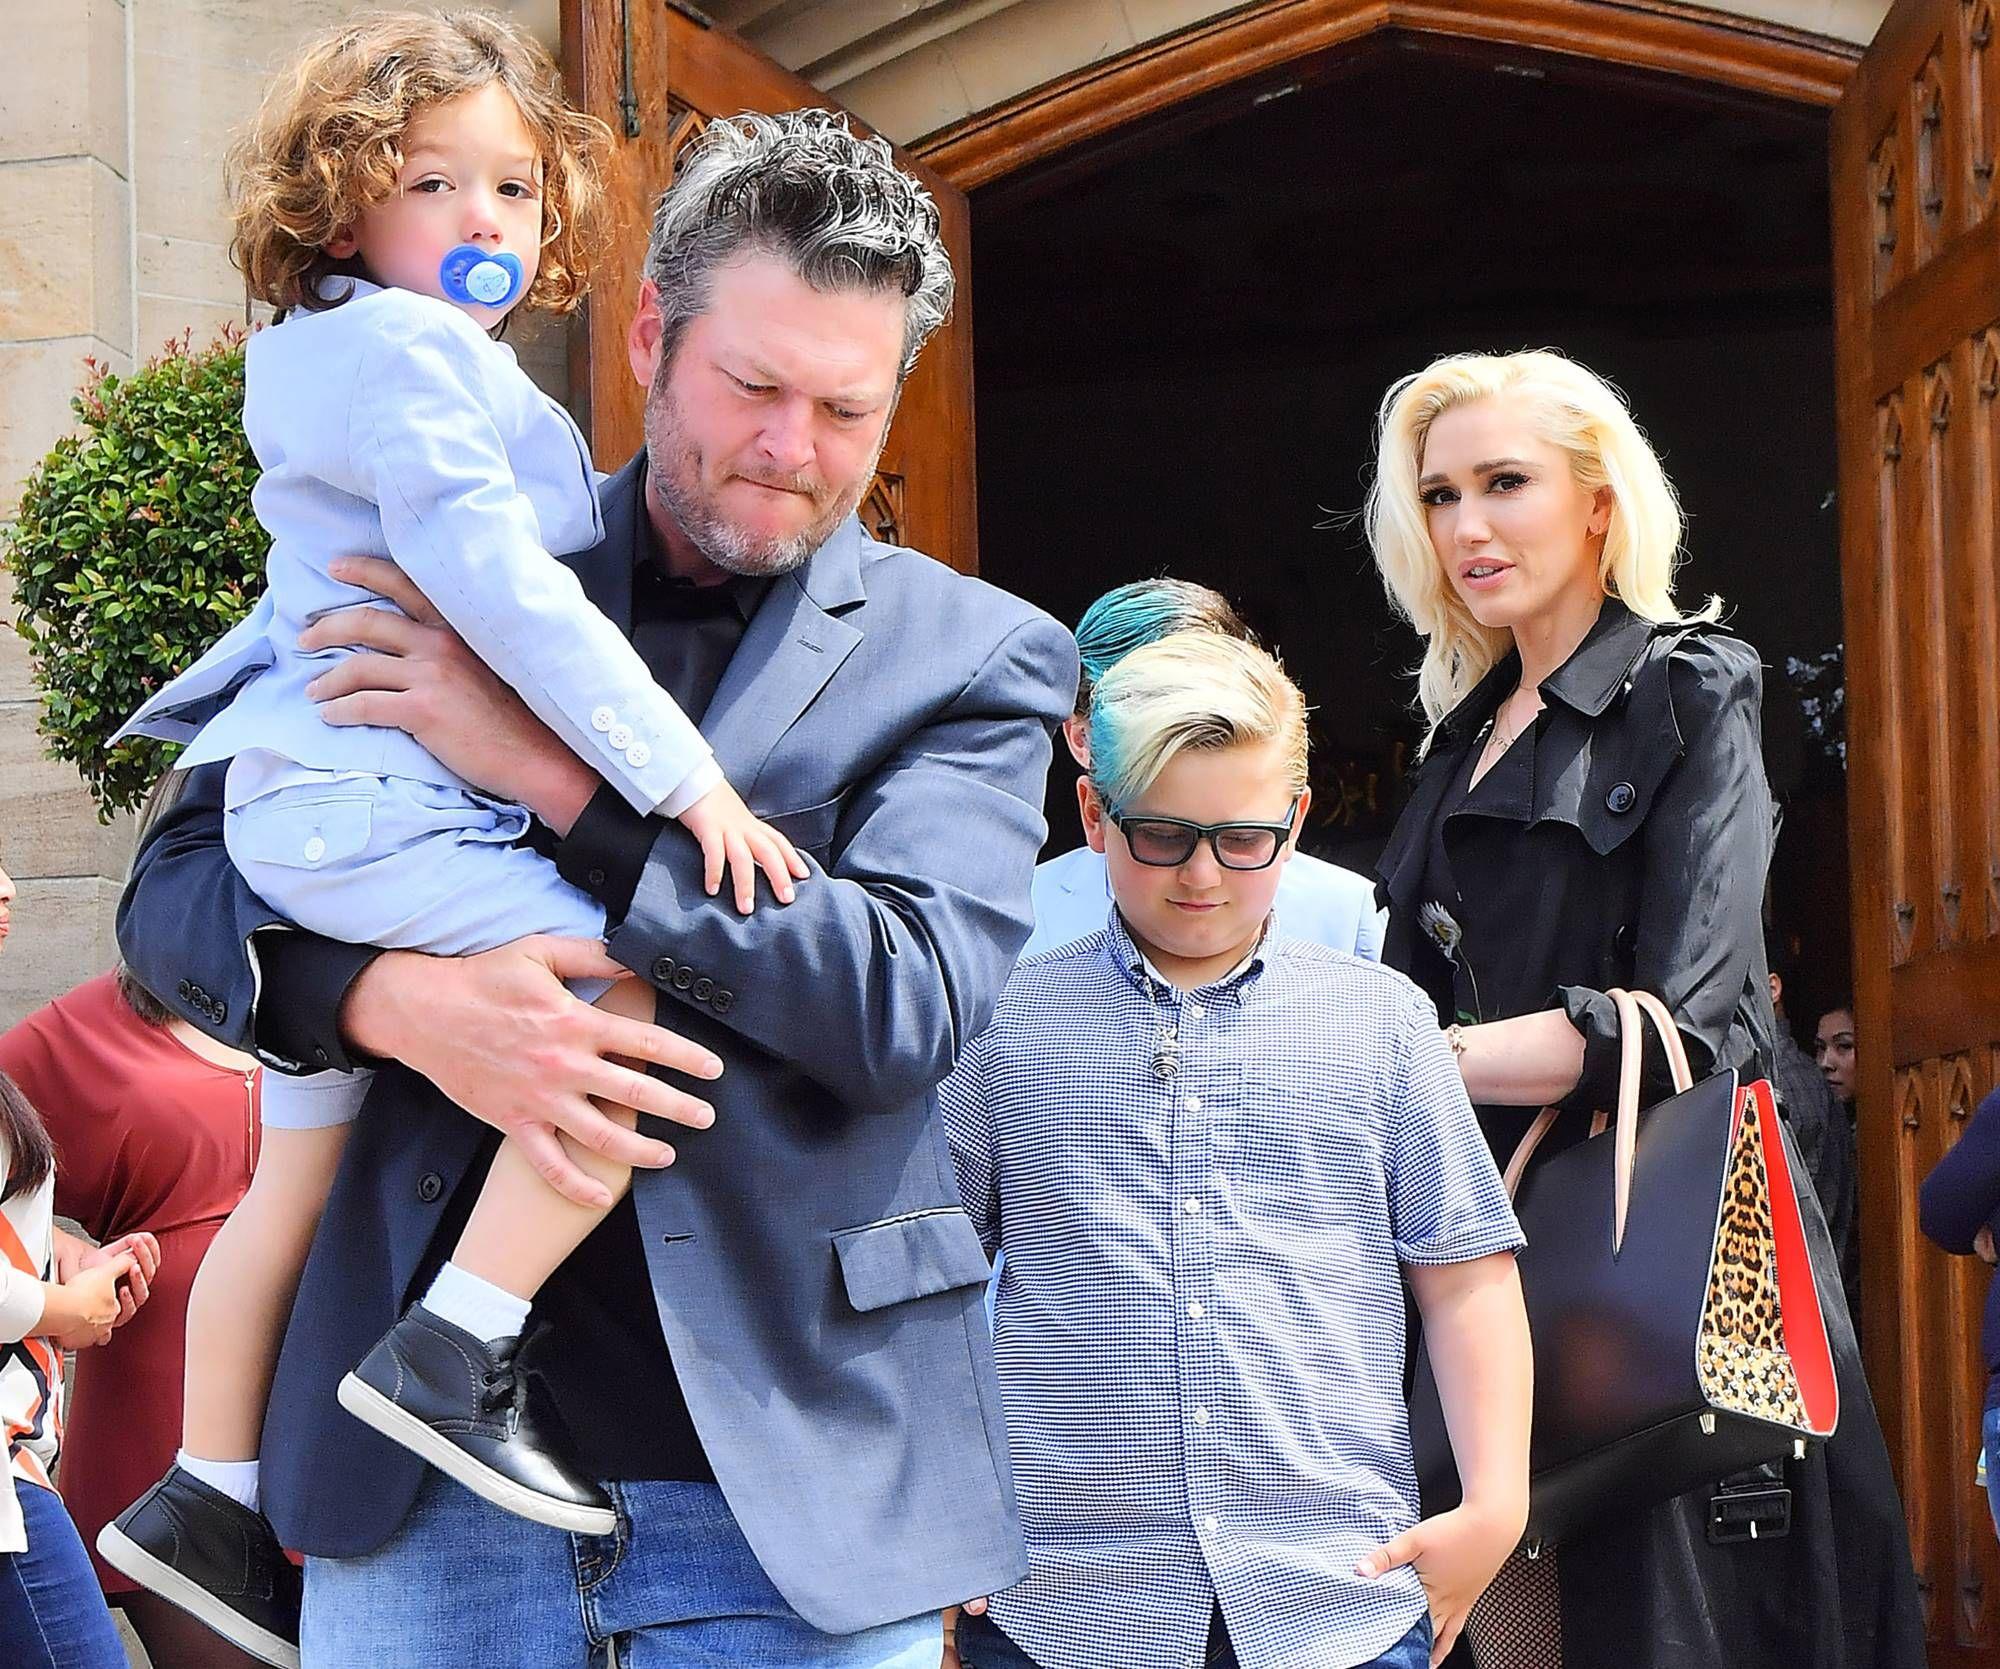 Blake Shelton Is Planning To Go All In With Gwen Stefani's